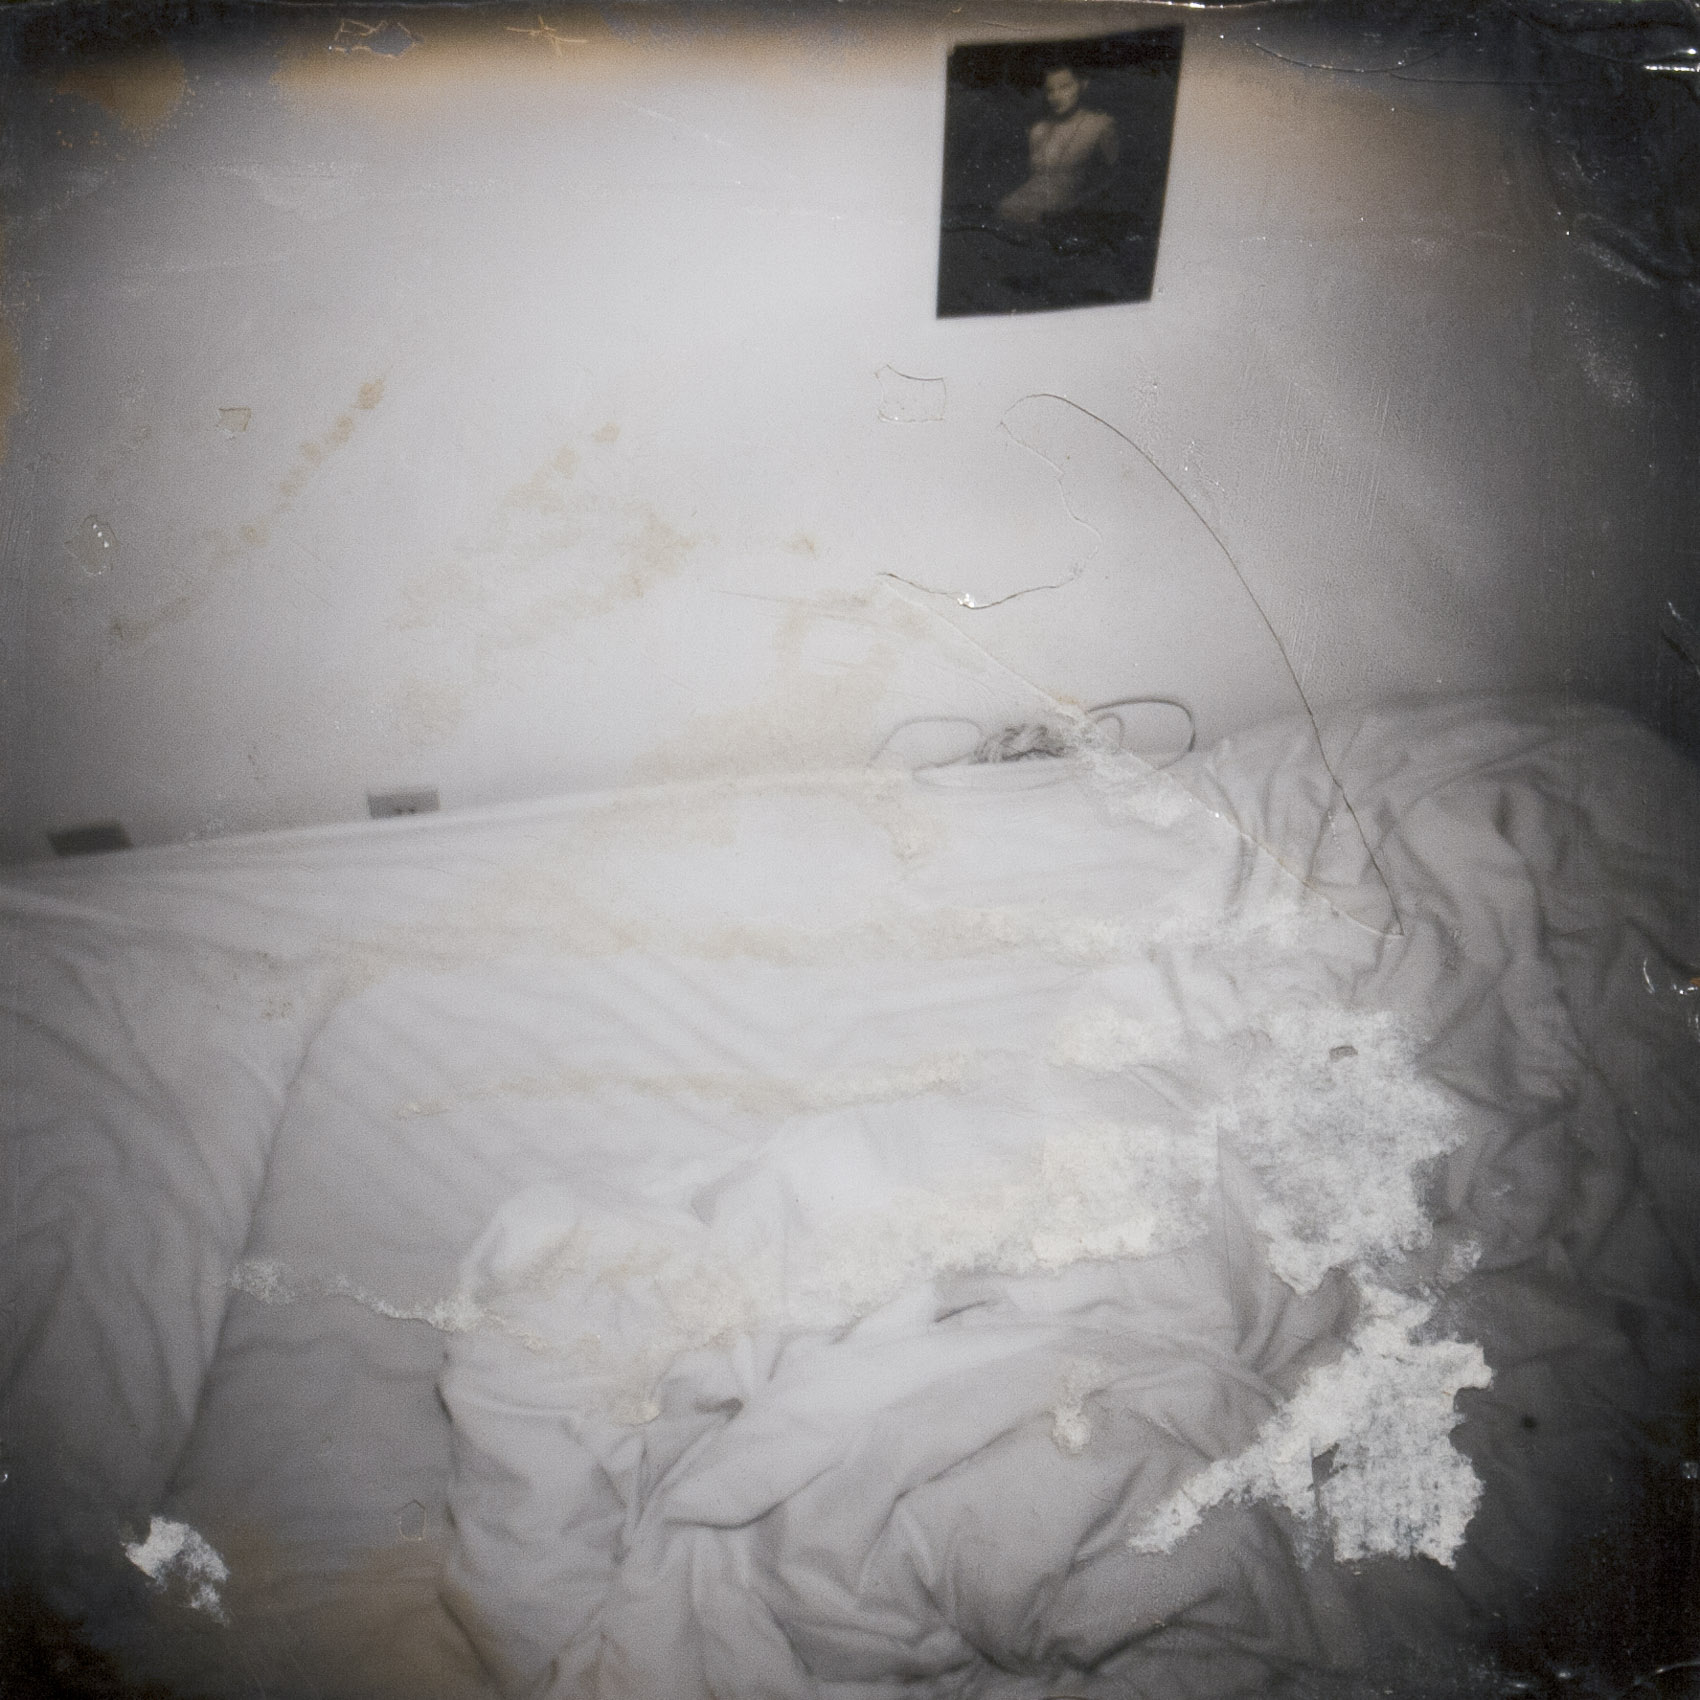 Unmade Bed (with the wires and the model on the wall) v.1 from the series The Santa Cruz Kids